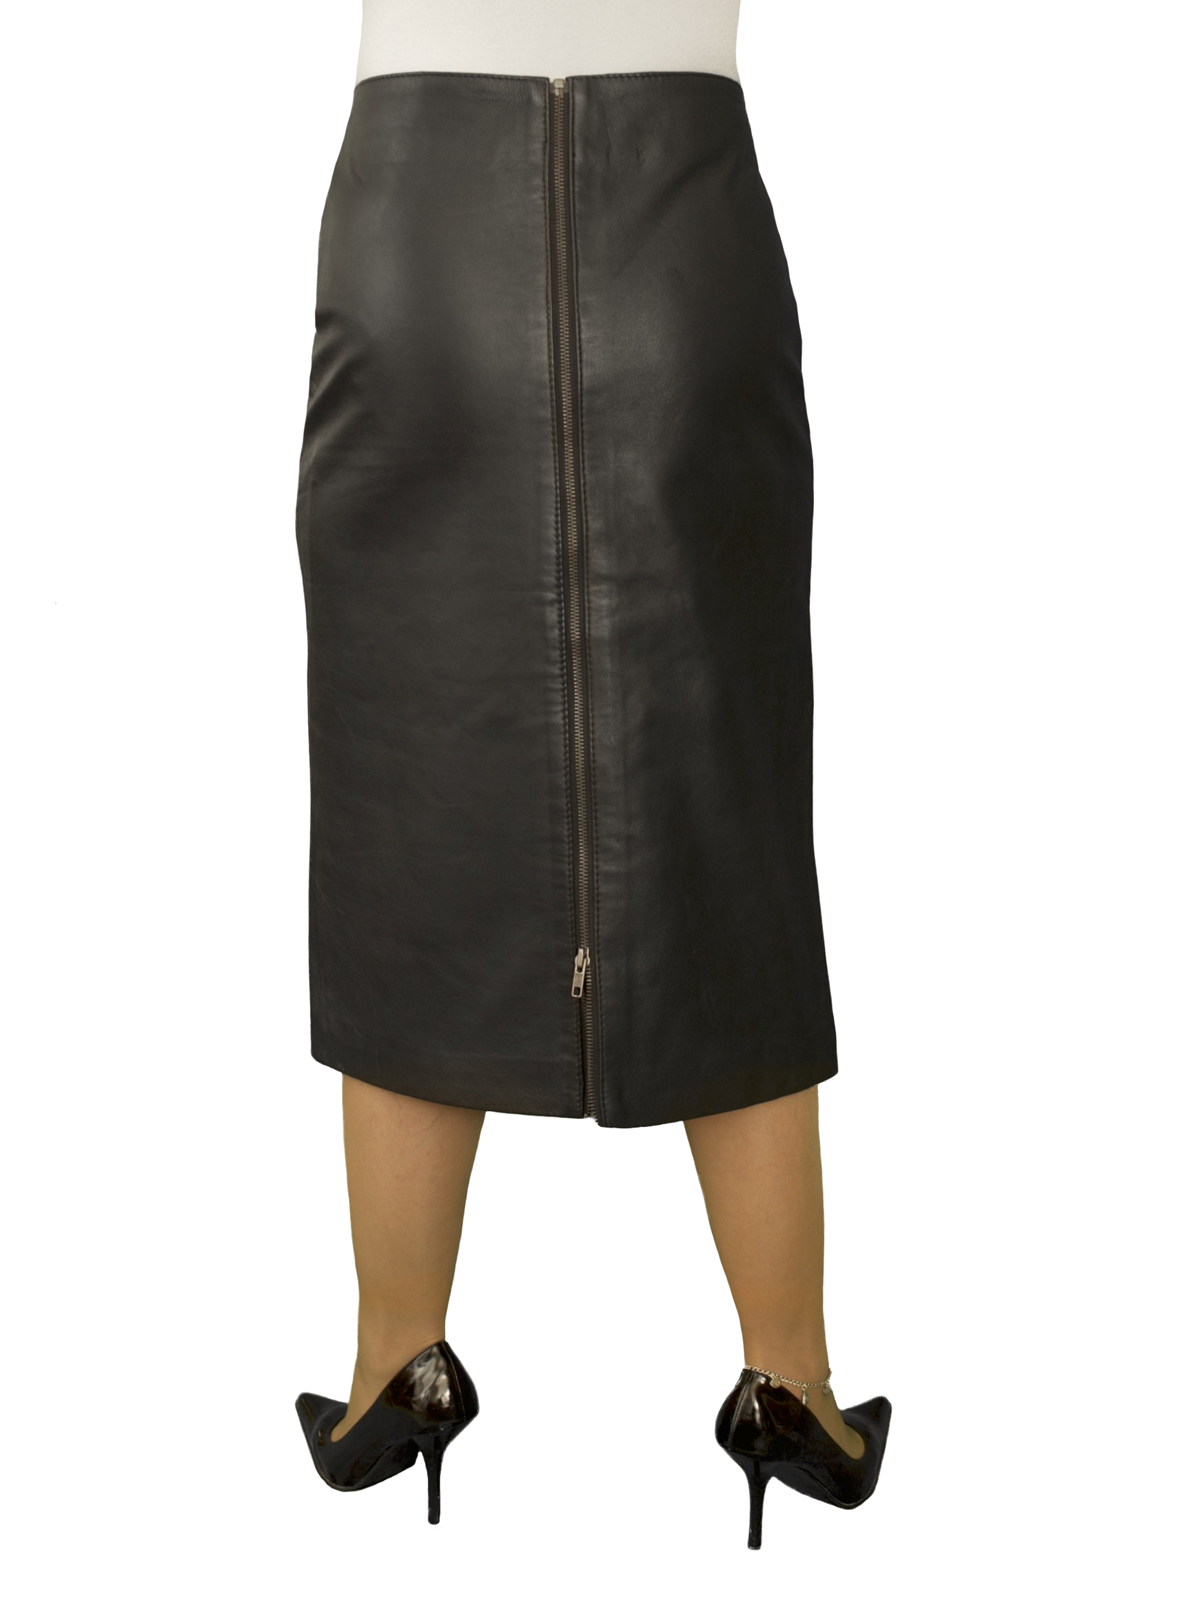 Black Superior Leather Midi Pencil Skirt with full rear zip (Length 27in)